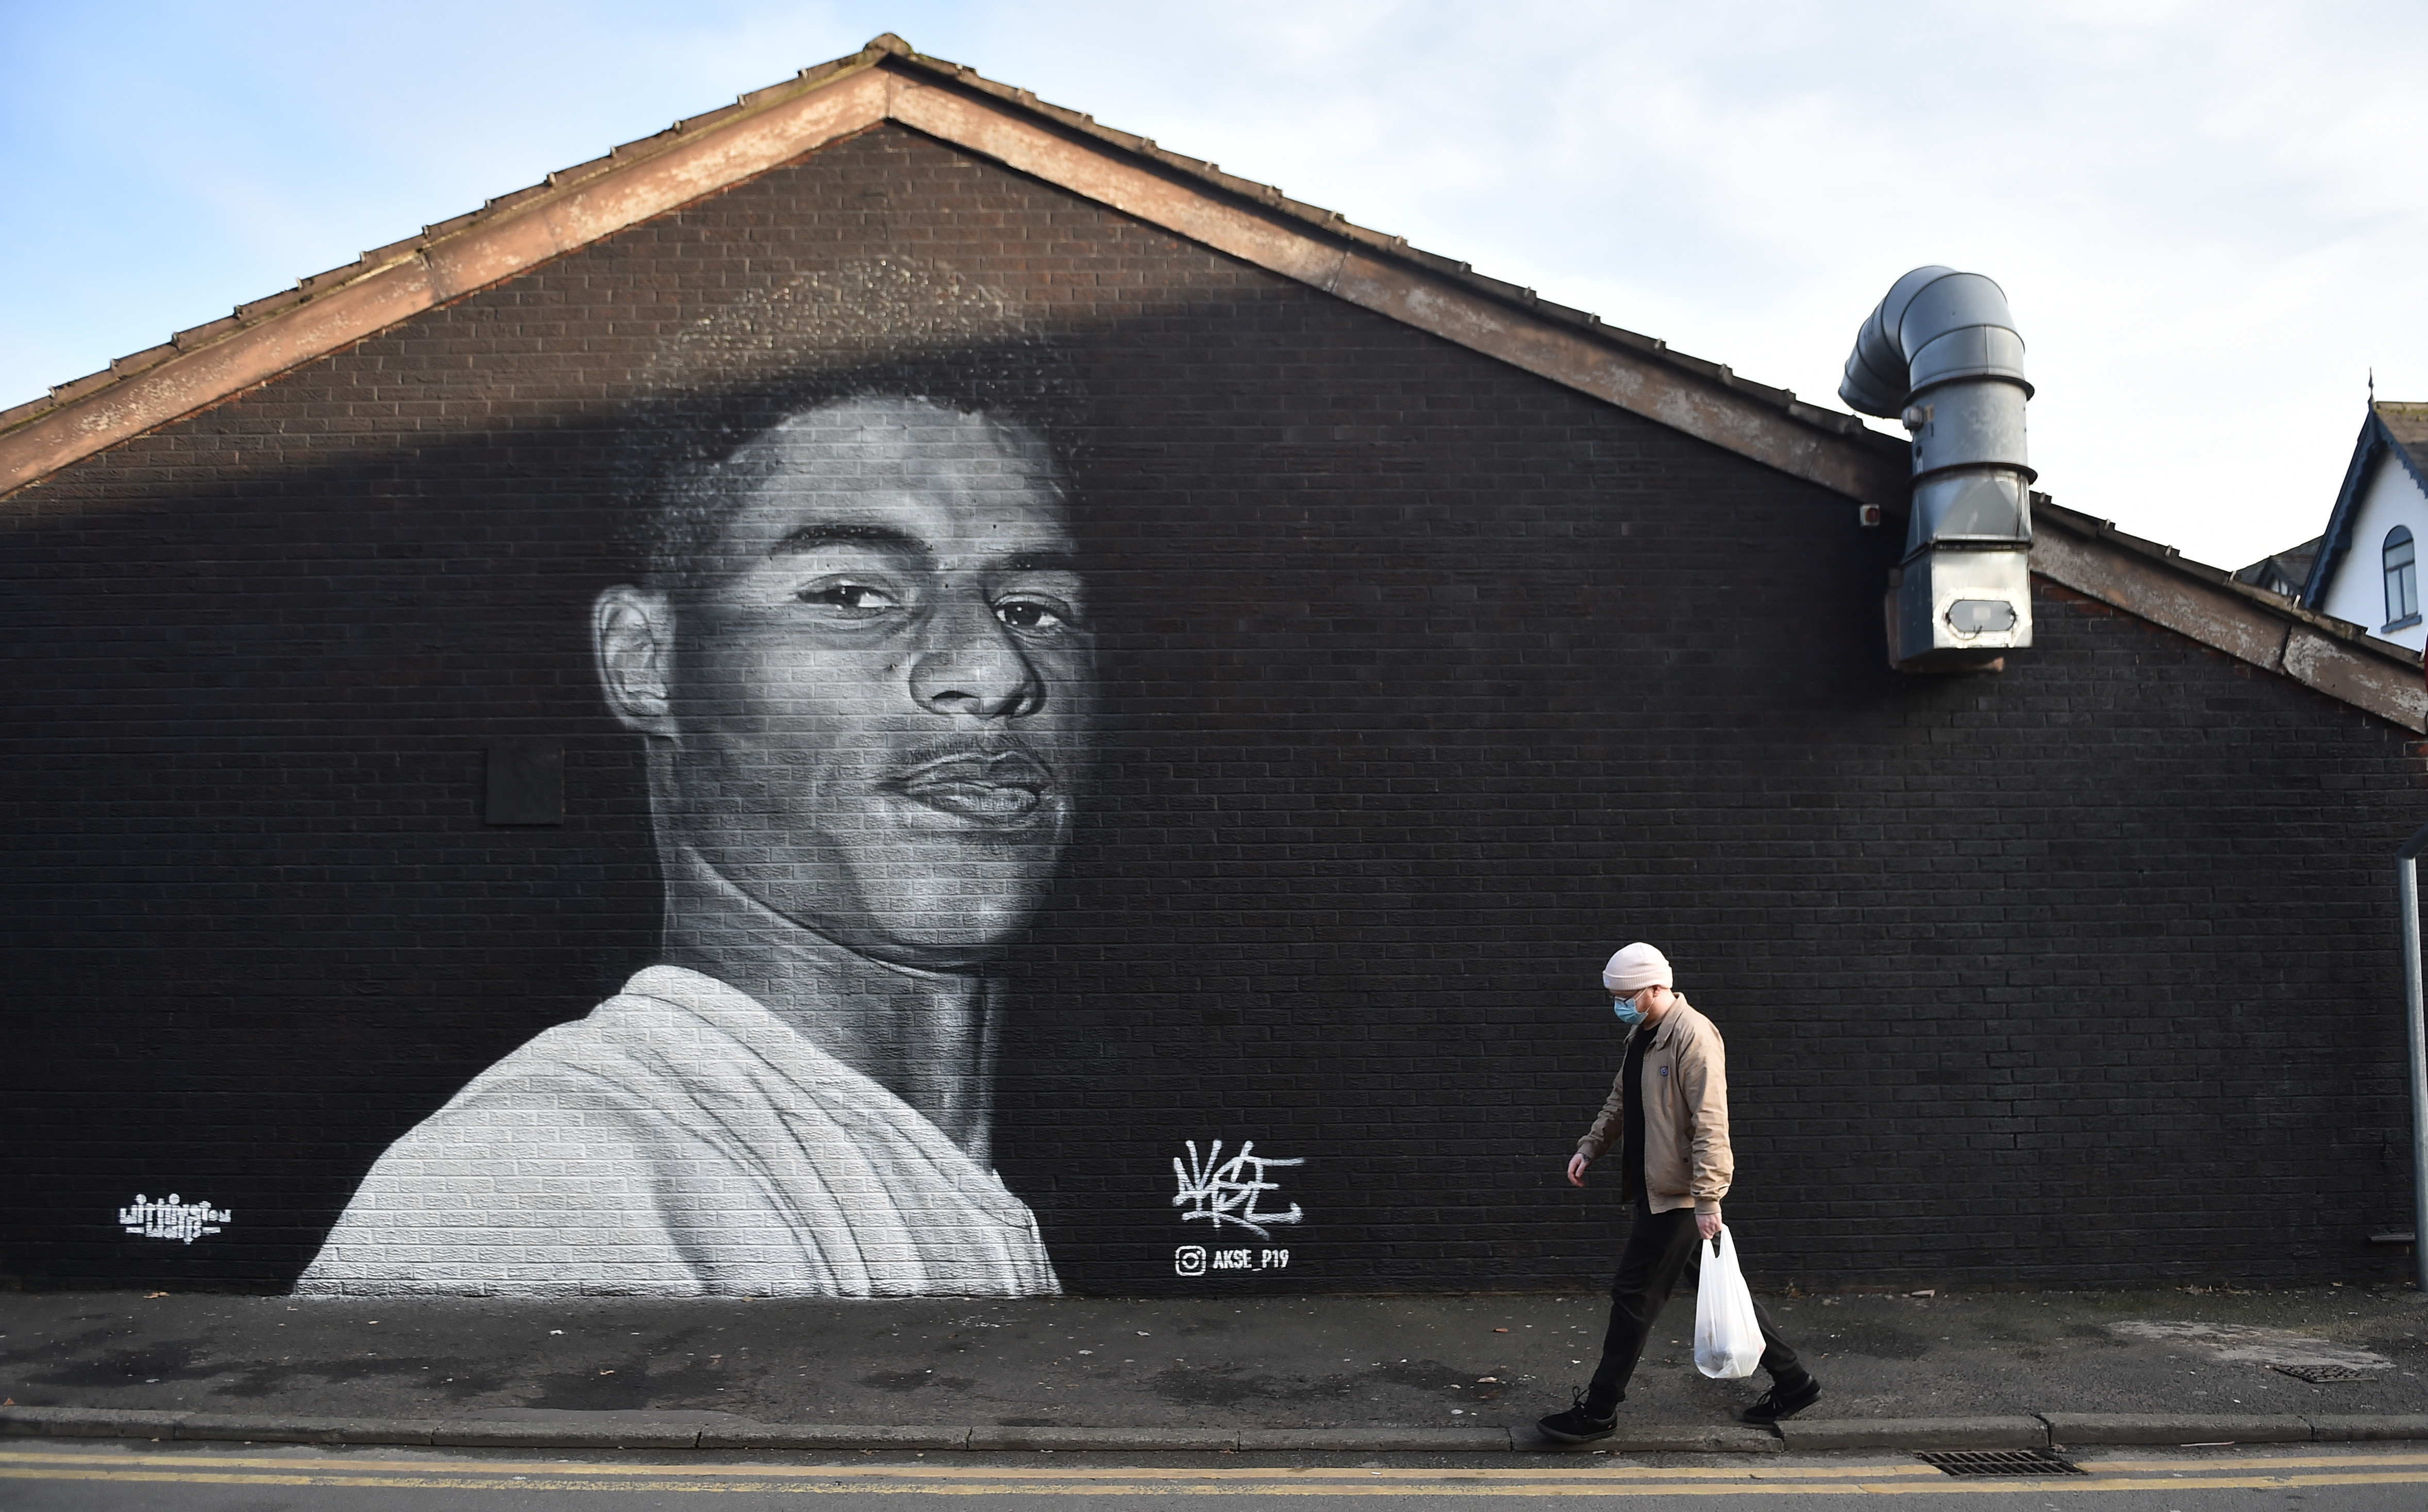 A mural of footballer Marcus Rashford in Manchester, painted by street artist Akse